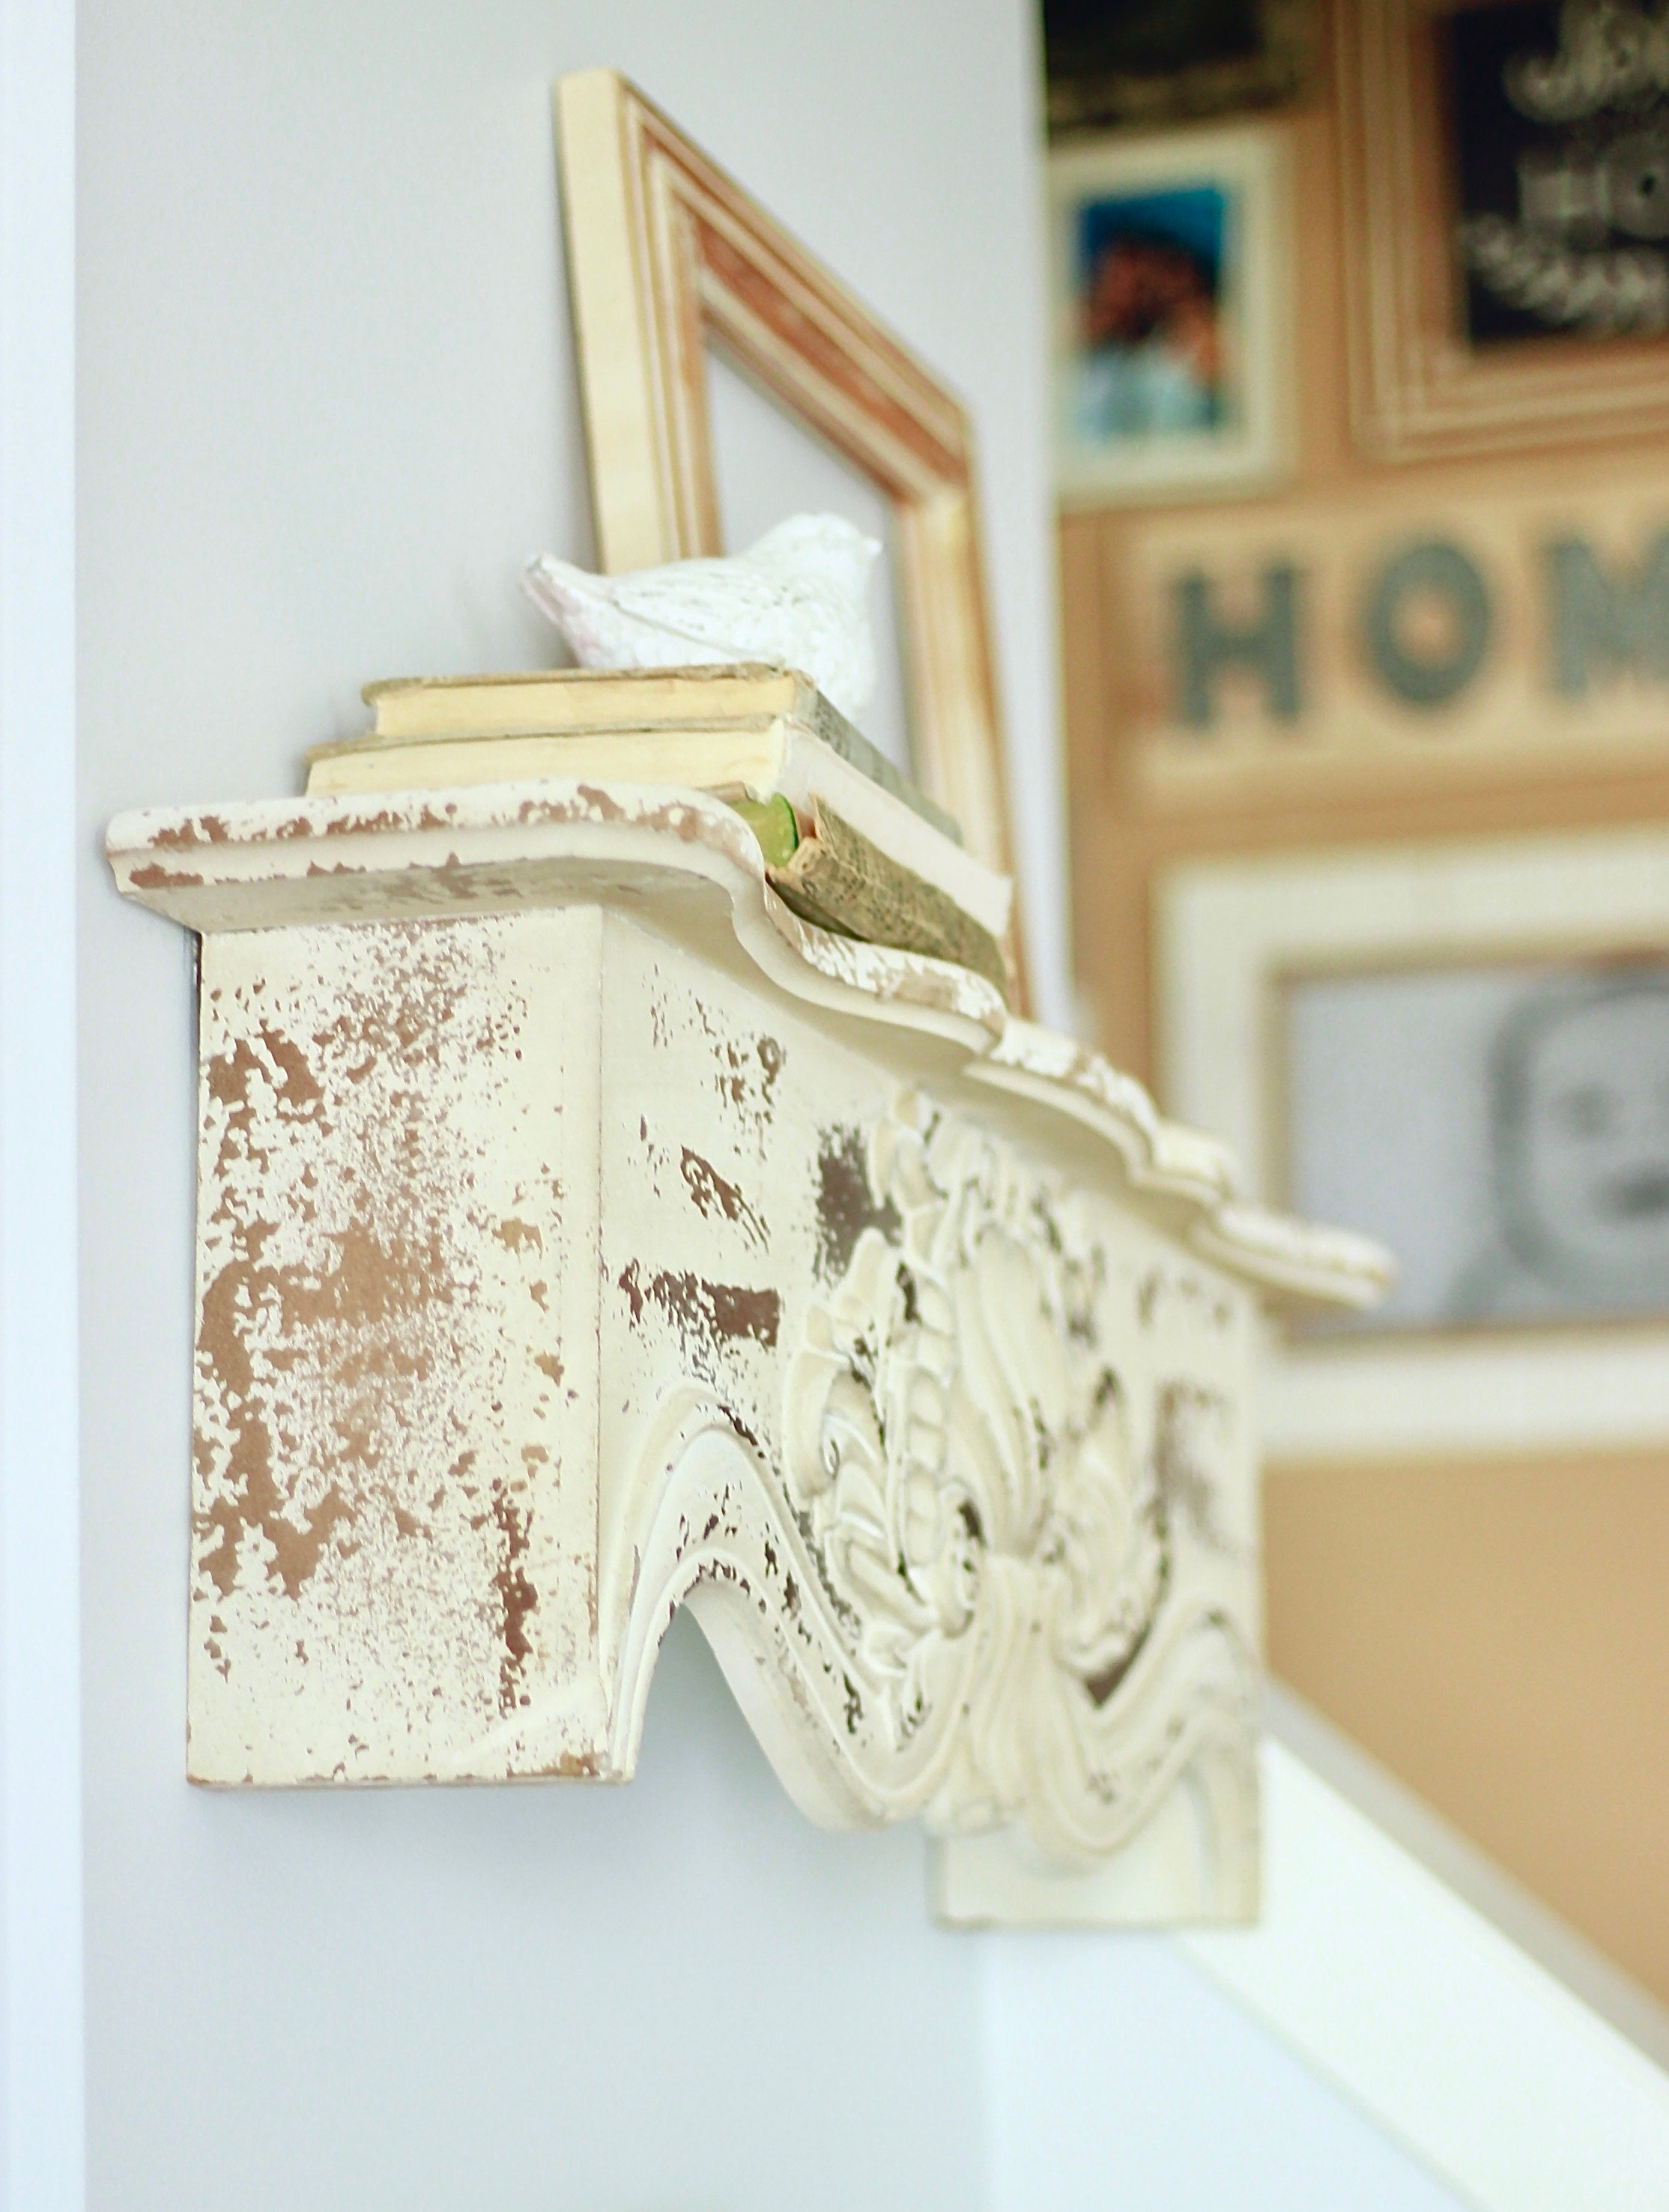 Chippy Wall Shelf. How I styled it & Where I found it for Cheap. I absolutely love how it looks with the rest of my vintage decor. Affiliate links to purchase your own www.whitepicketfarmhouse.com